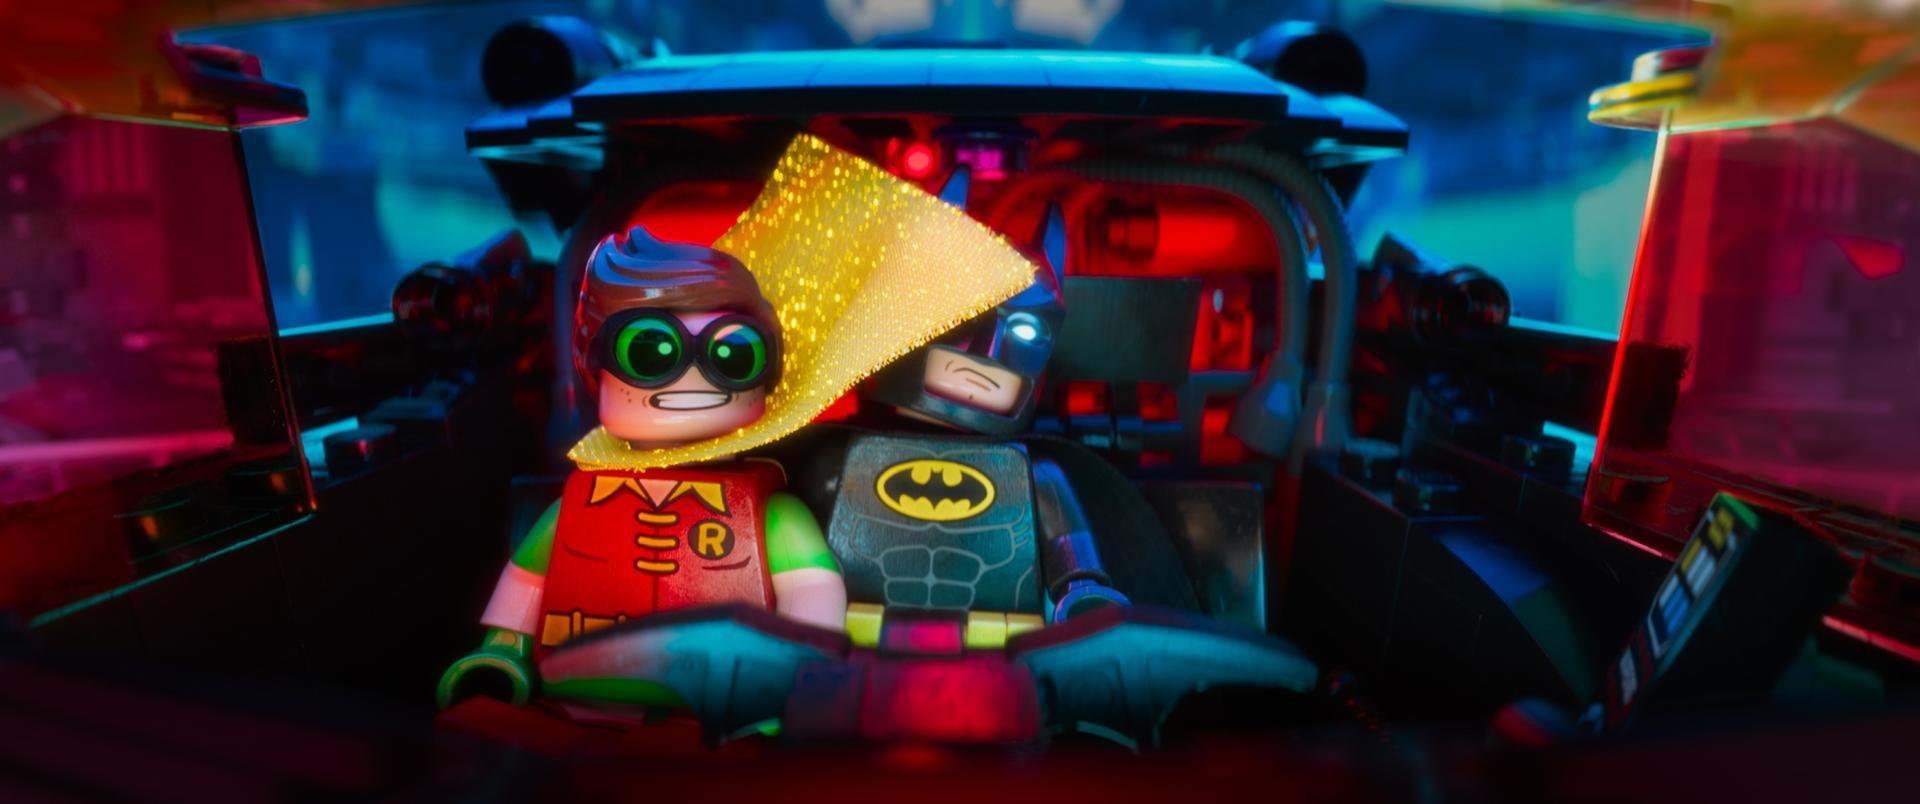 The Lego Batman Movie Robin und Batman